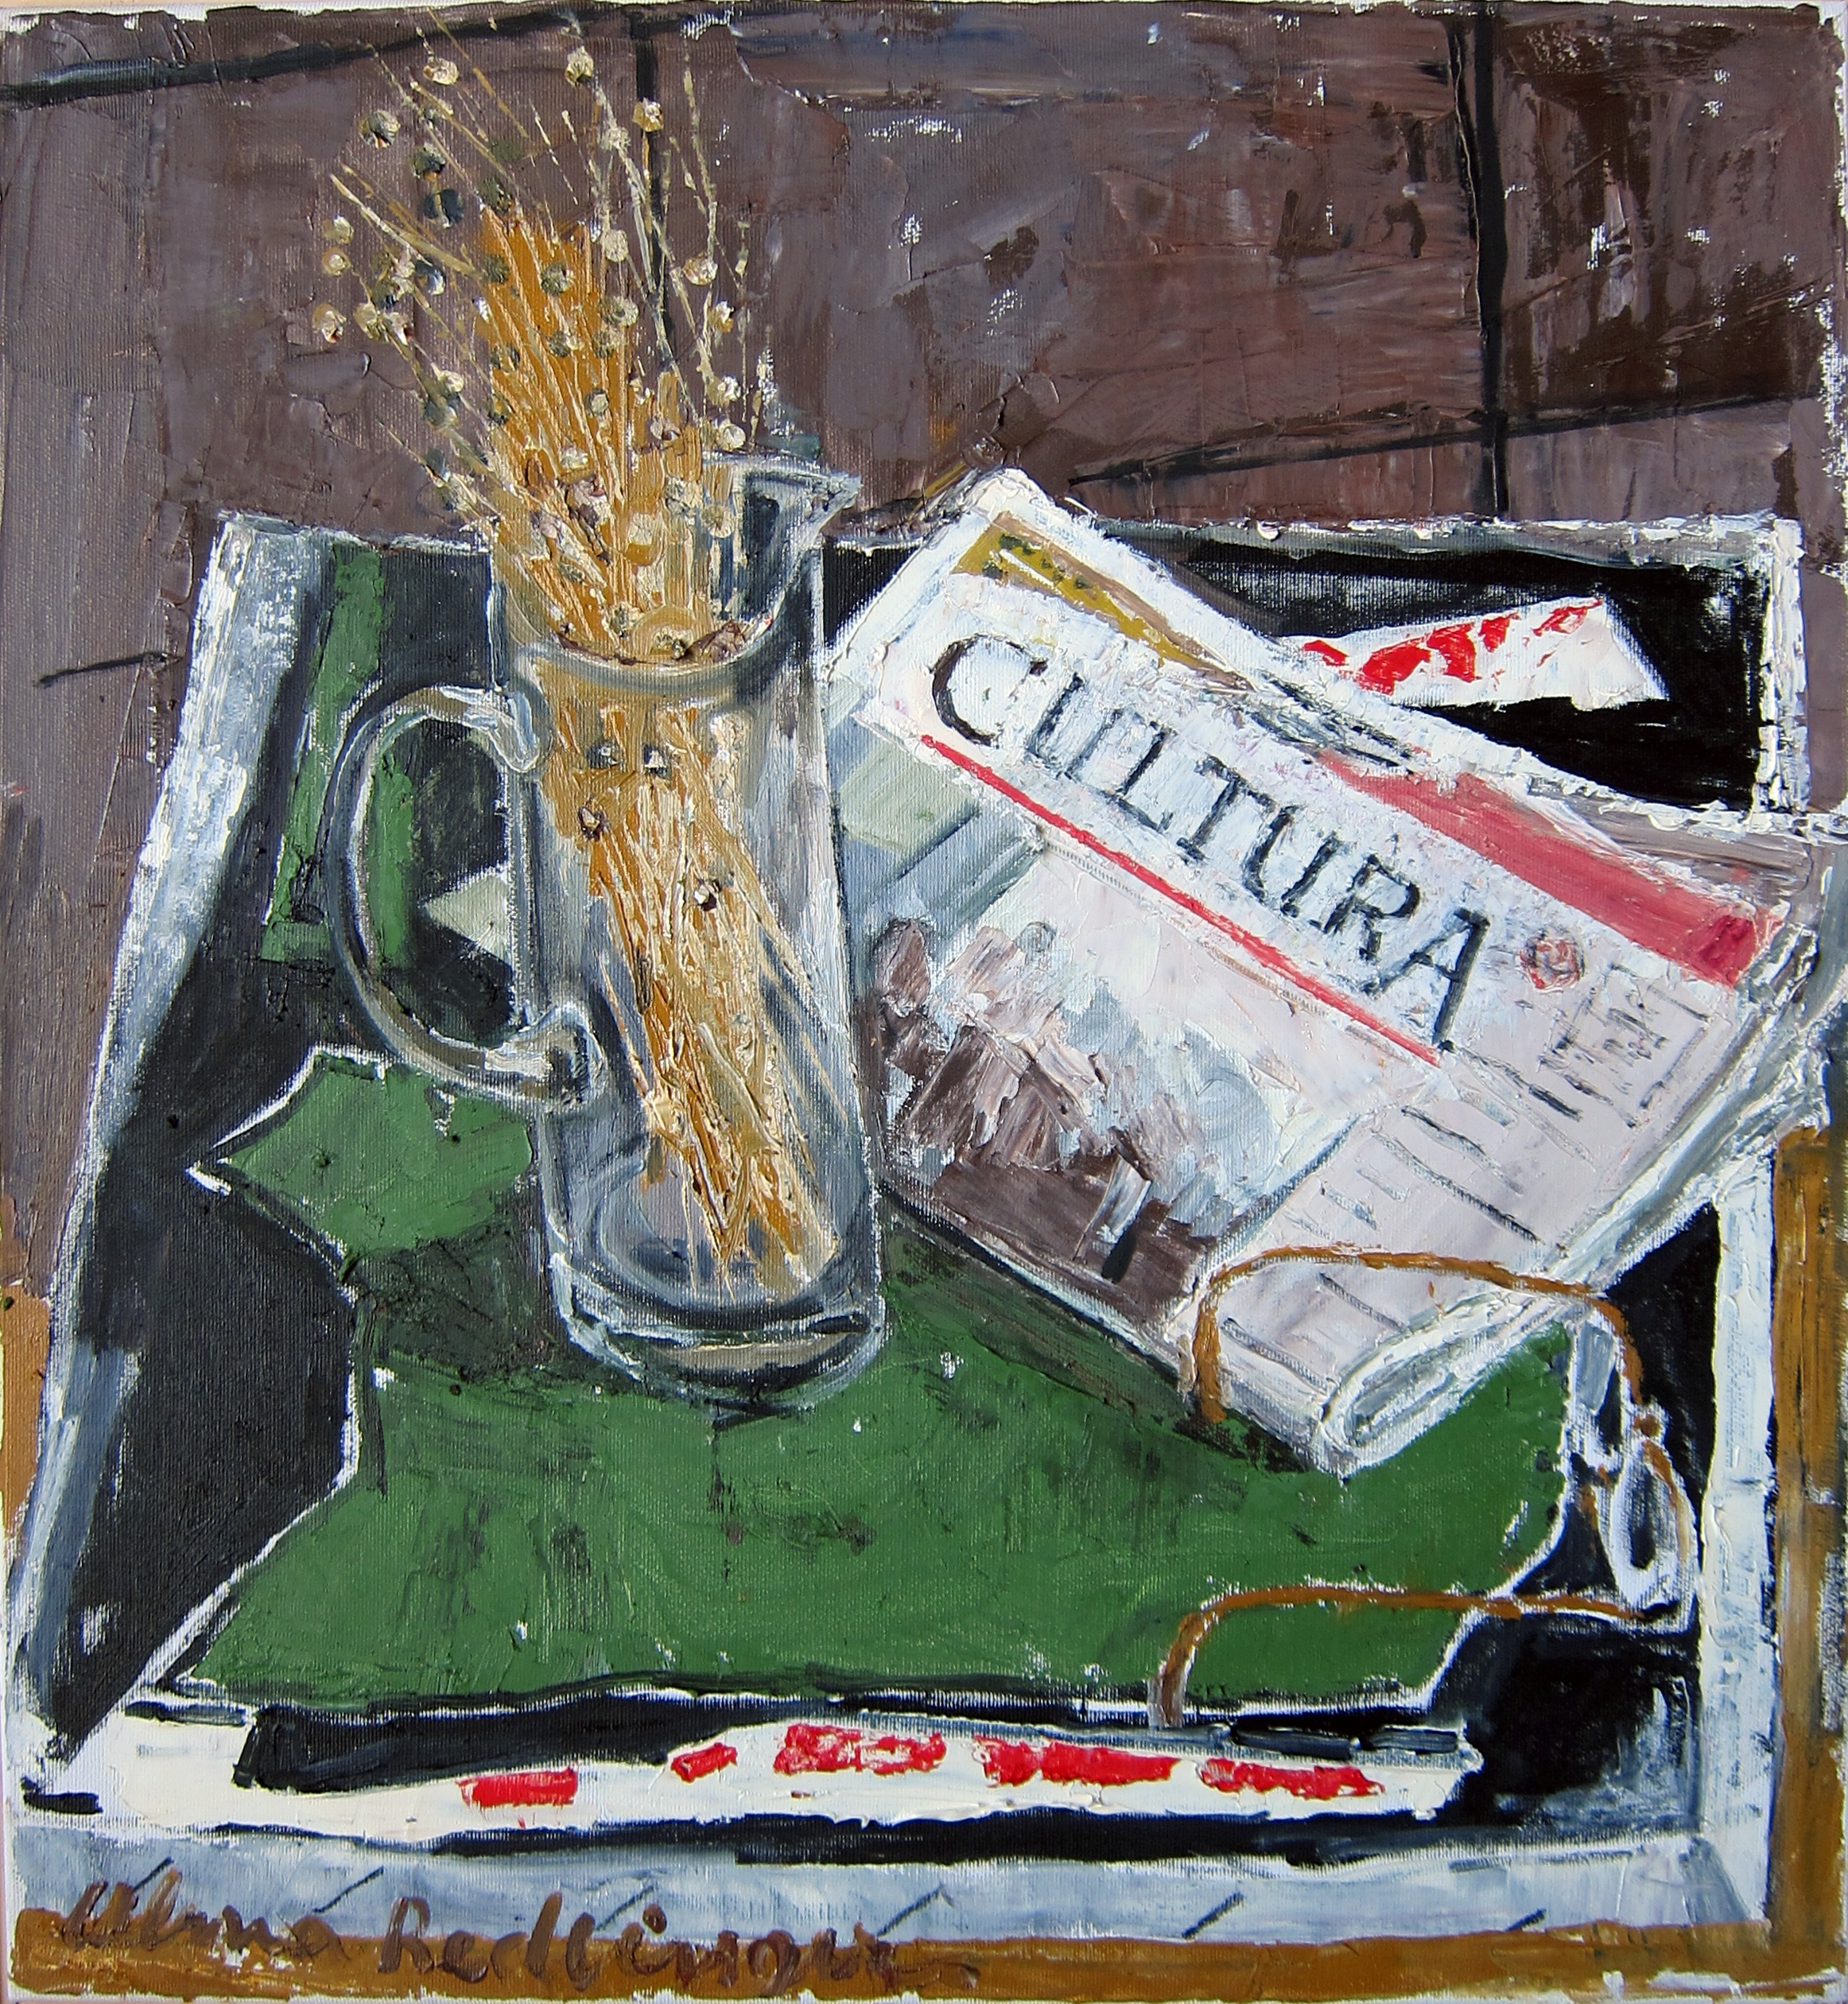 Cultura, 2011, oil/canvas,  55x50 cm